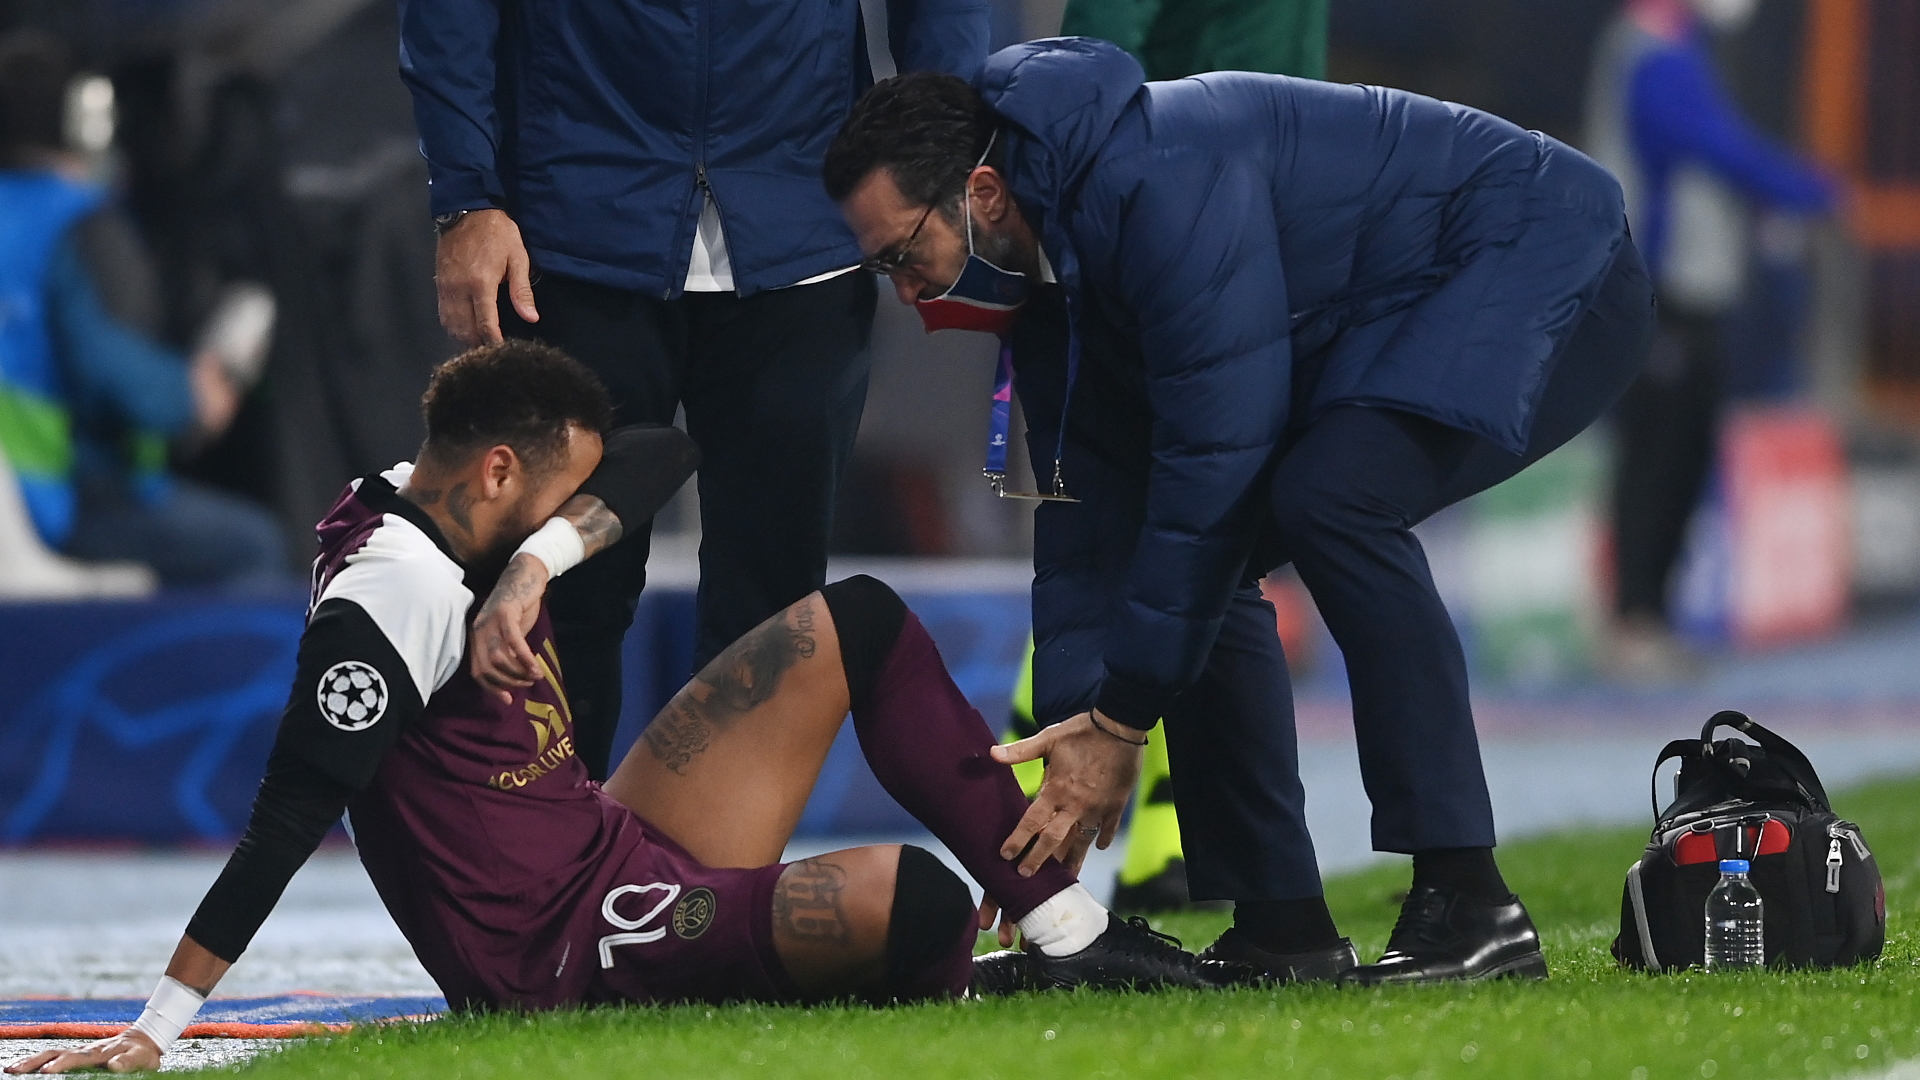 'Neymar has incredibly sensitive feet' - Brazilian star suffers 'extreme pain' when fouled, says PSG assistant Low